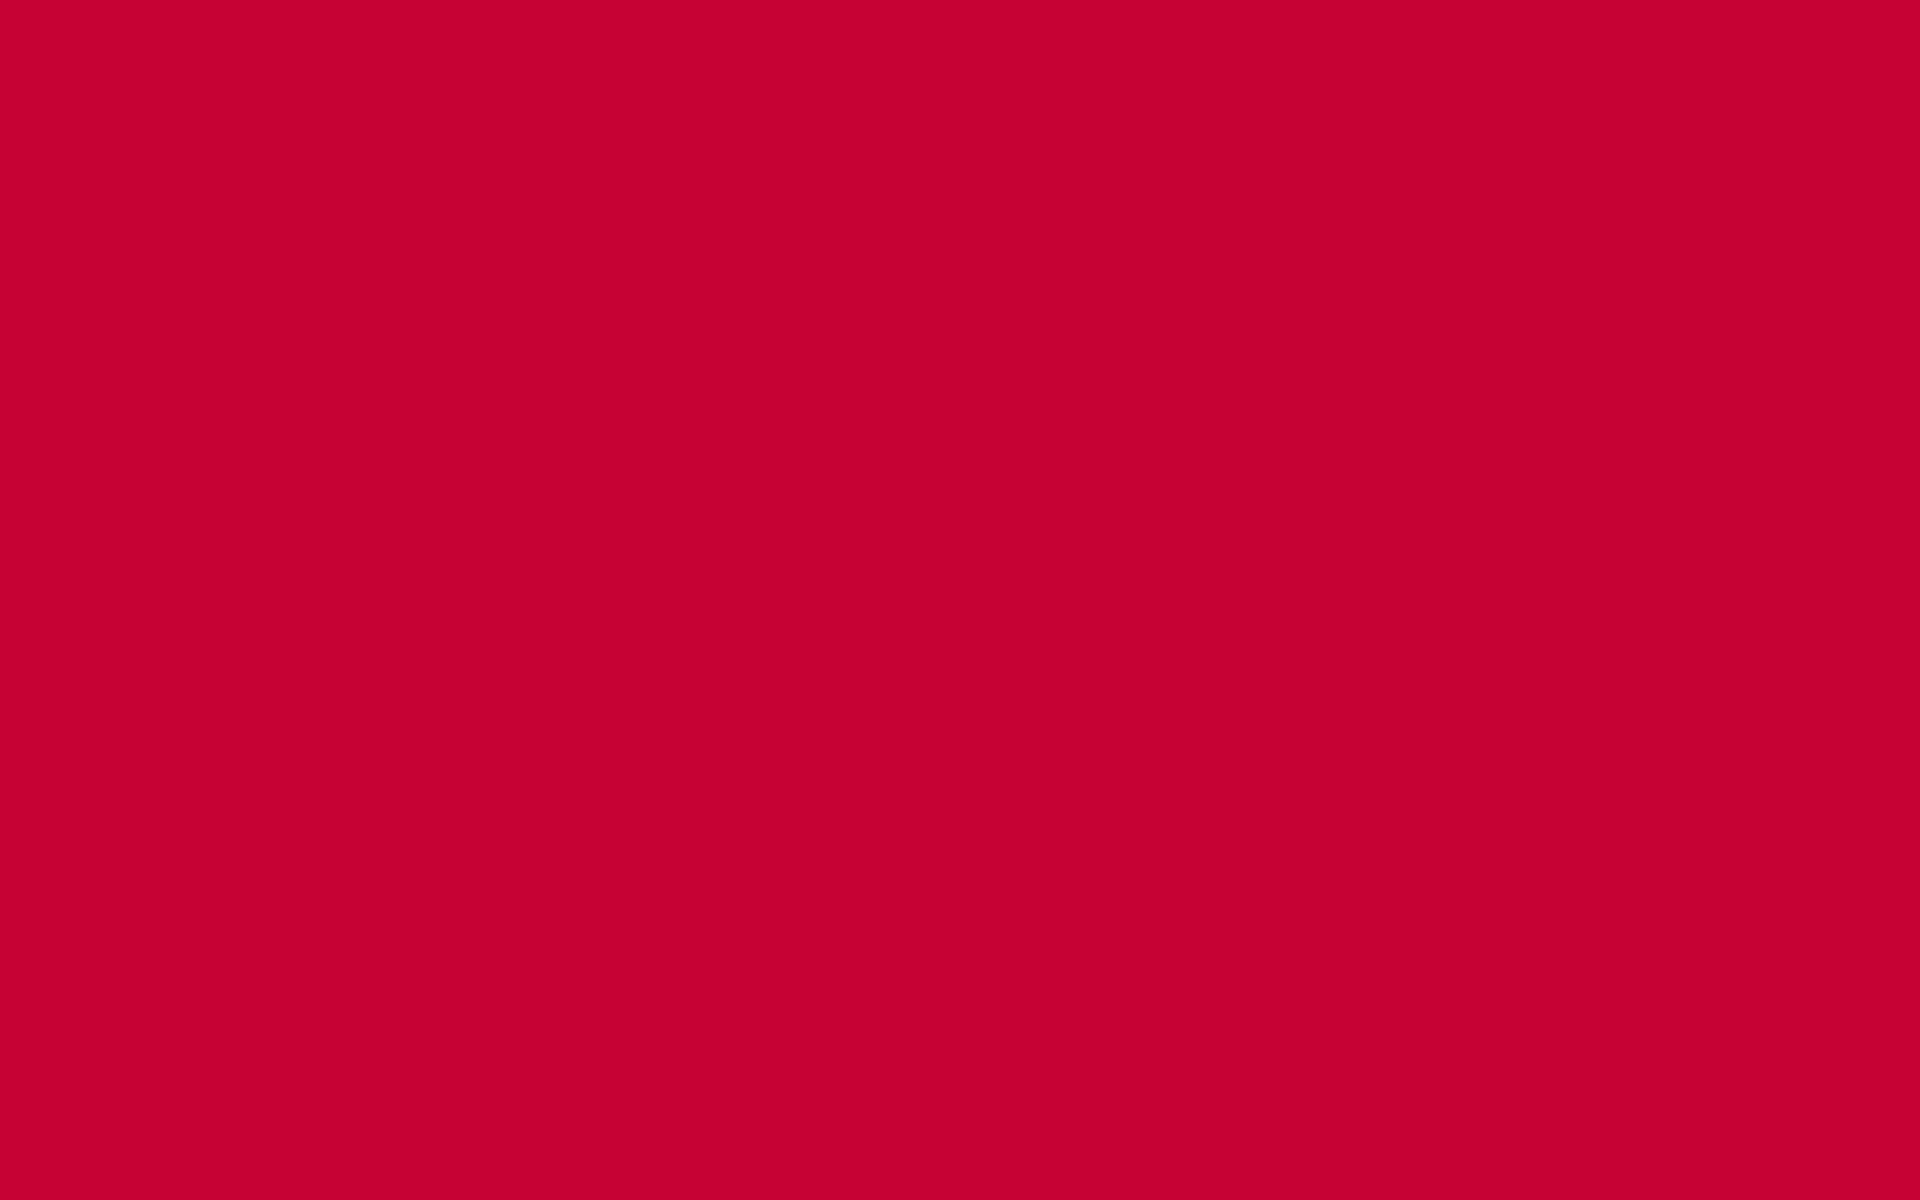 1920x1200 Red NCS Solid Color Background